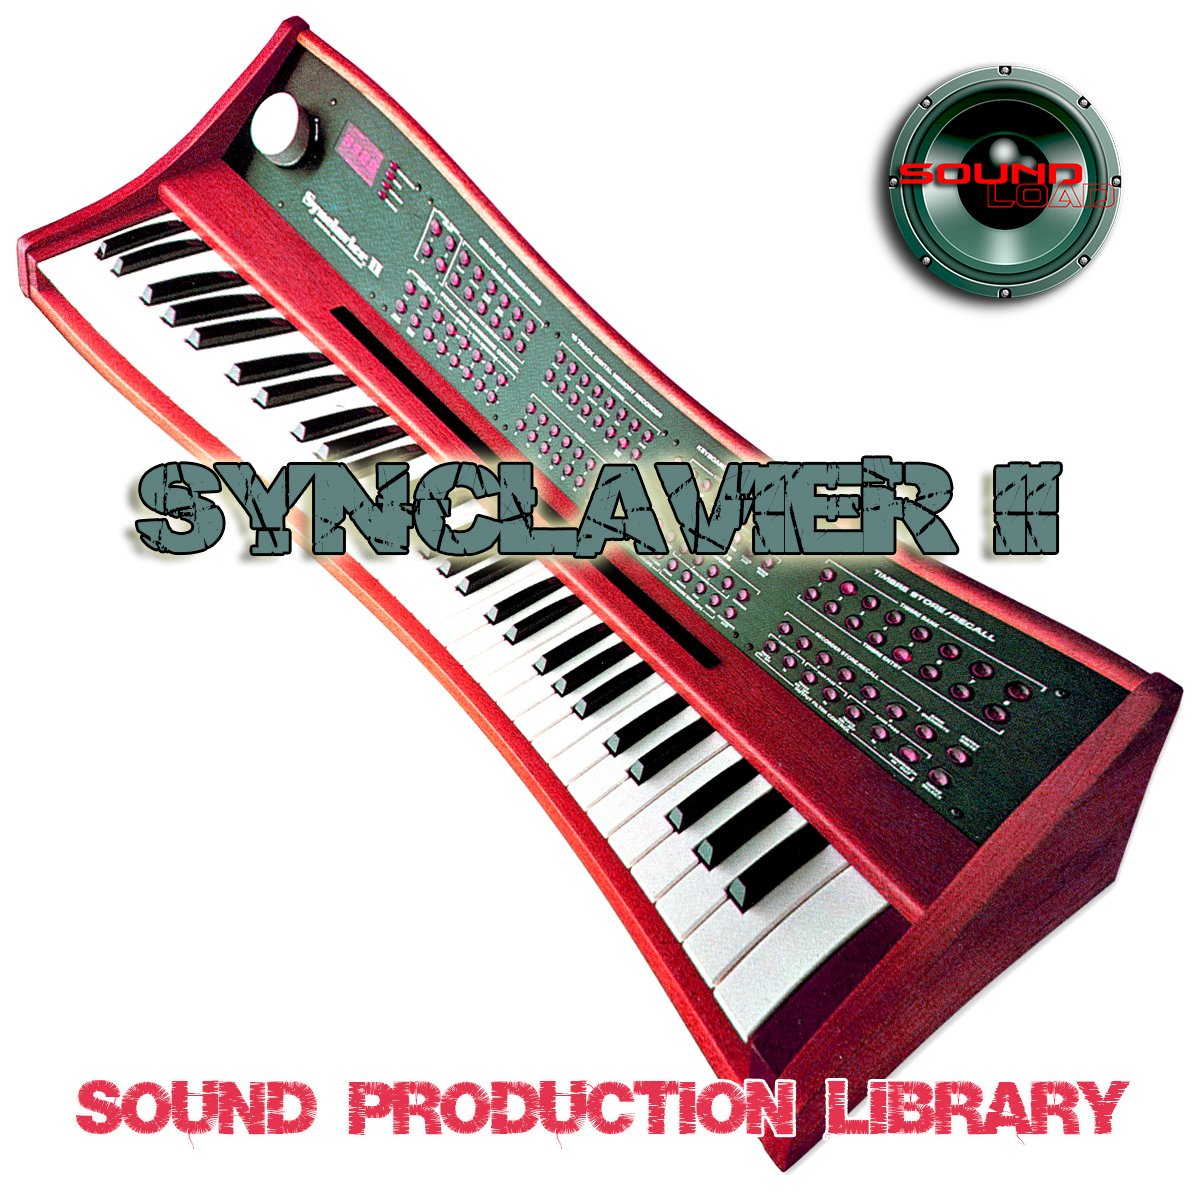 SYNCLAVIER II Large unique original 24bit WAVE/Kontakt Multi-Layer Samples Library. FREE USA Continental Shipping on 2DVDs or download; by SoundLoad